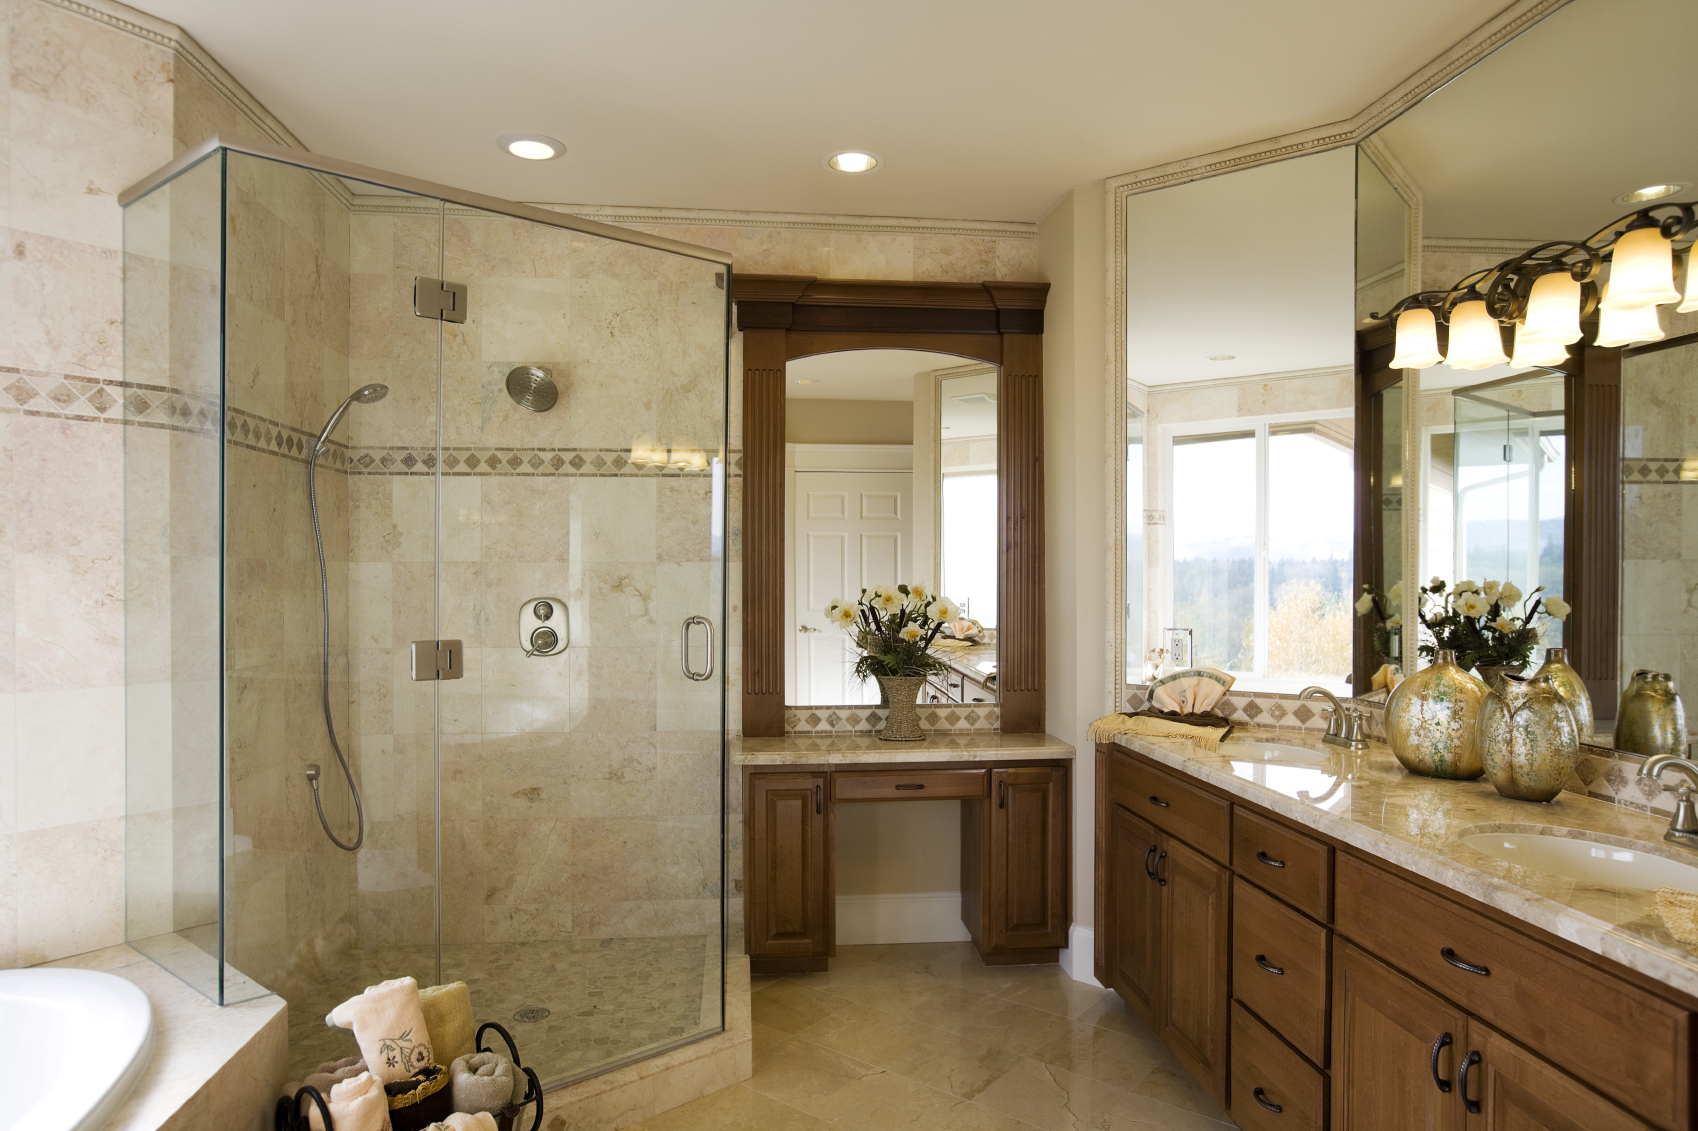 avoid extreme temperatures to maintain bathroom